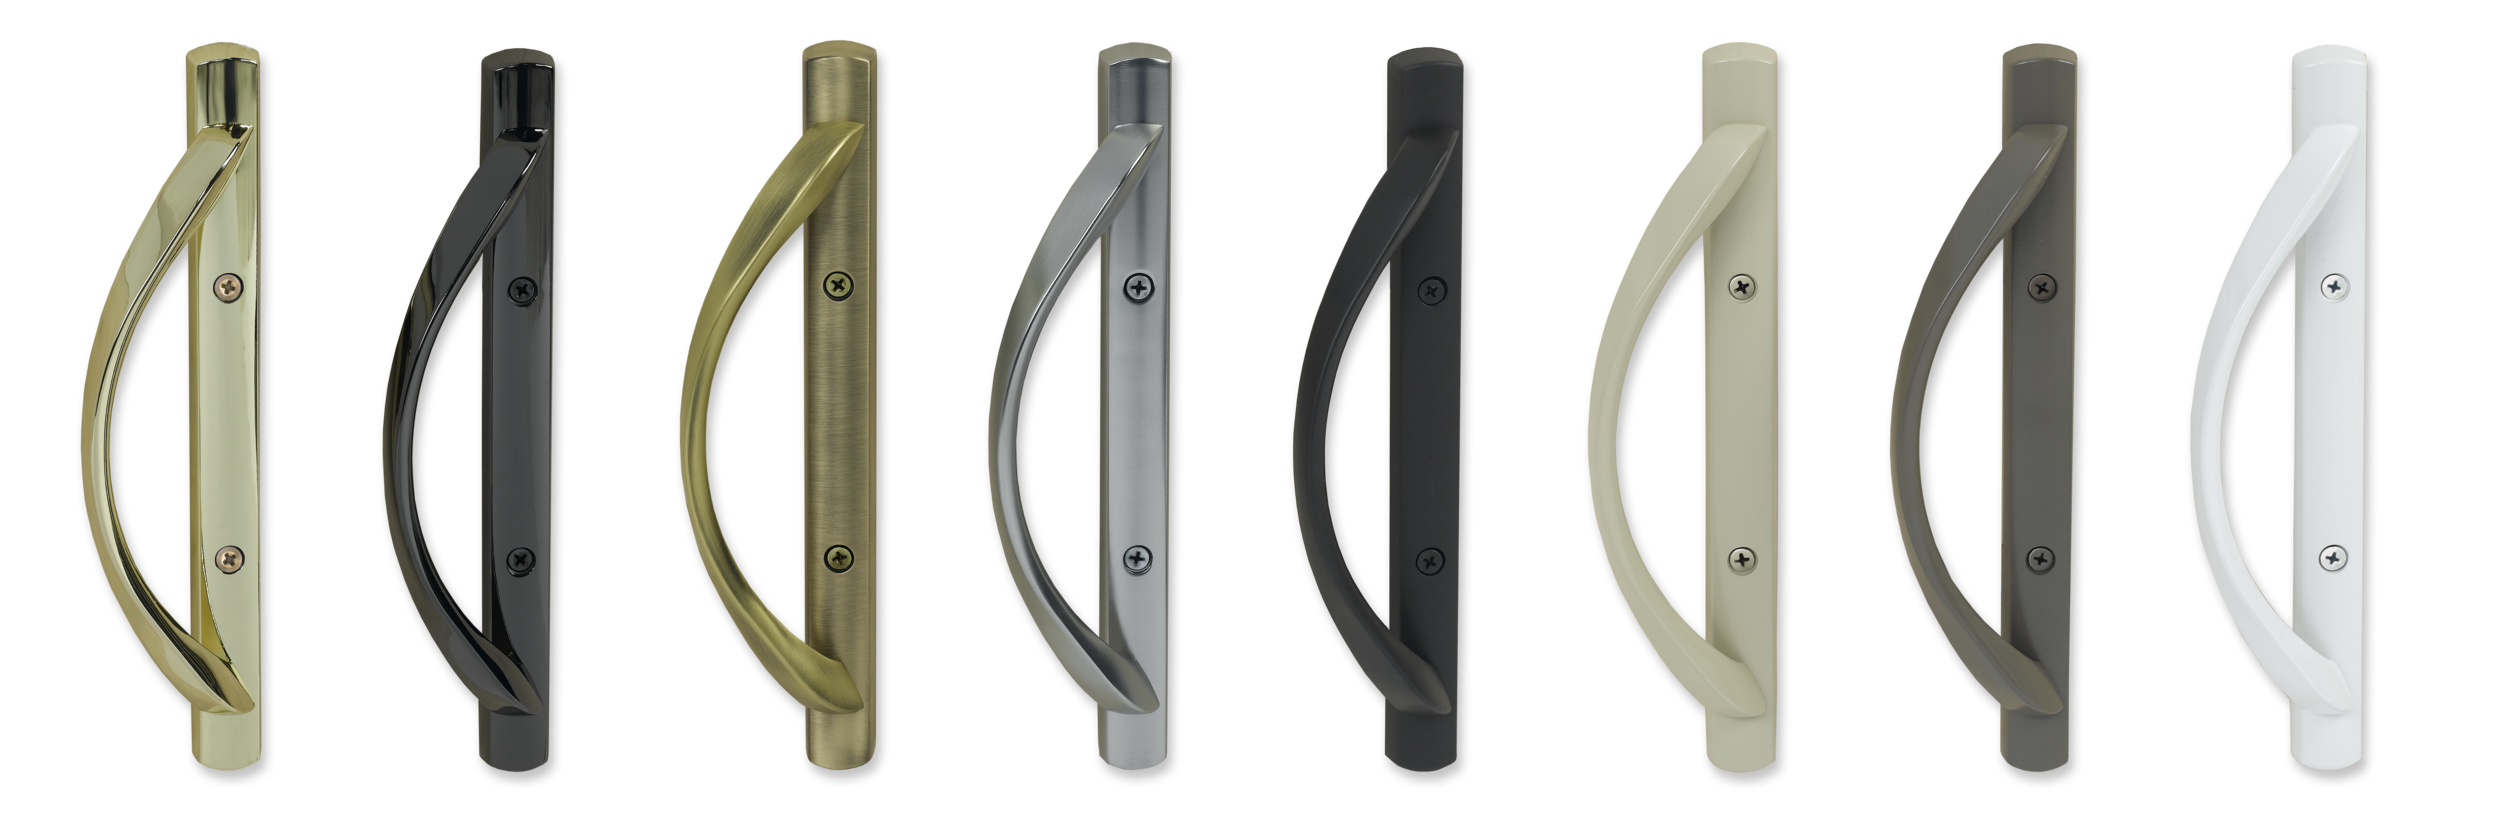 Doorwall handle options:  (L to R) Brass, Black Nickel, Antique Brass, Brushed Chrome, Faux Oil Rubbed Bronze, Almond, Terratone, White